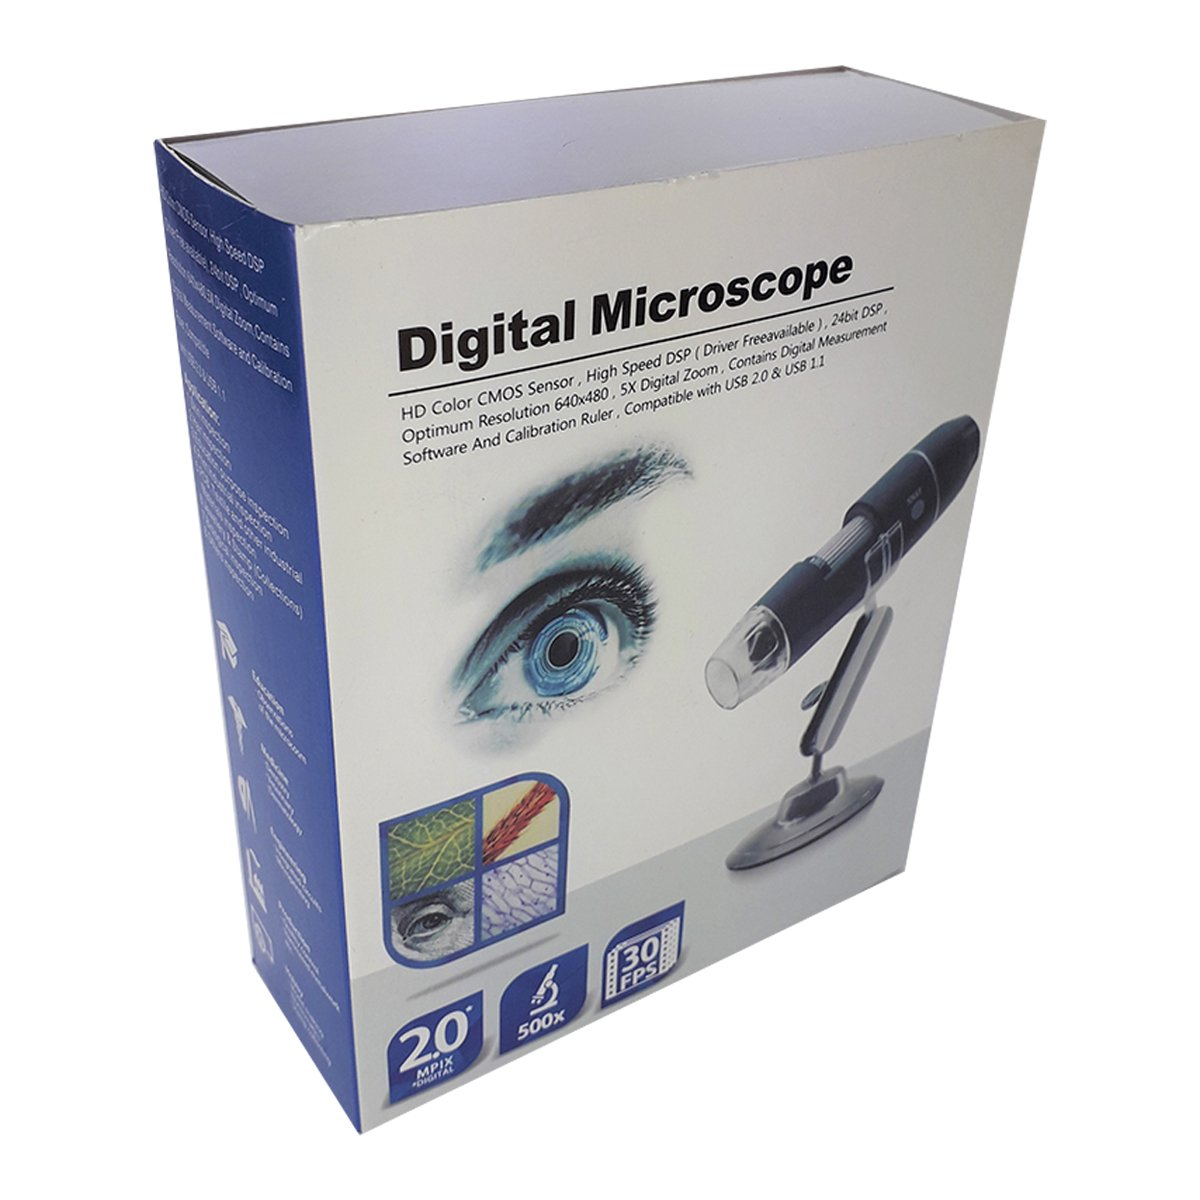 Microscopio Digital Usb 2.0, Hd Color